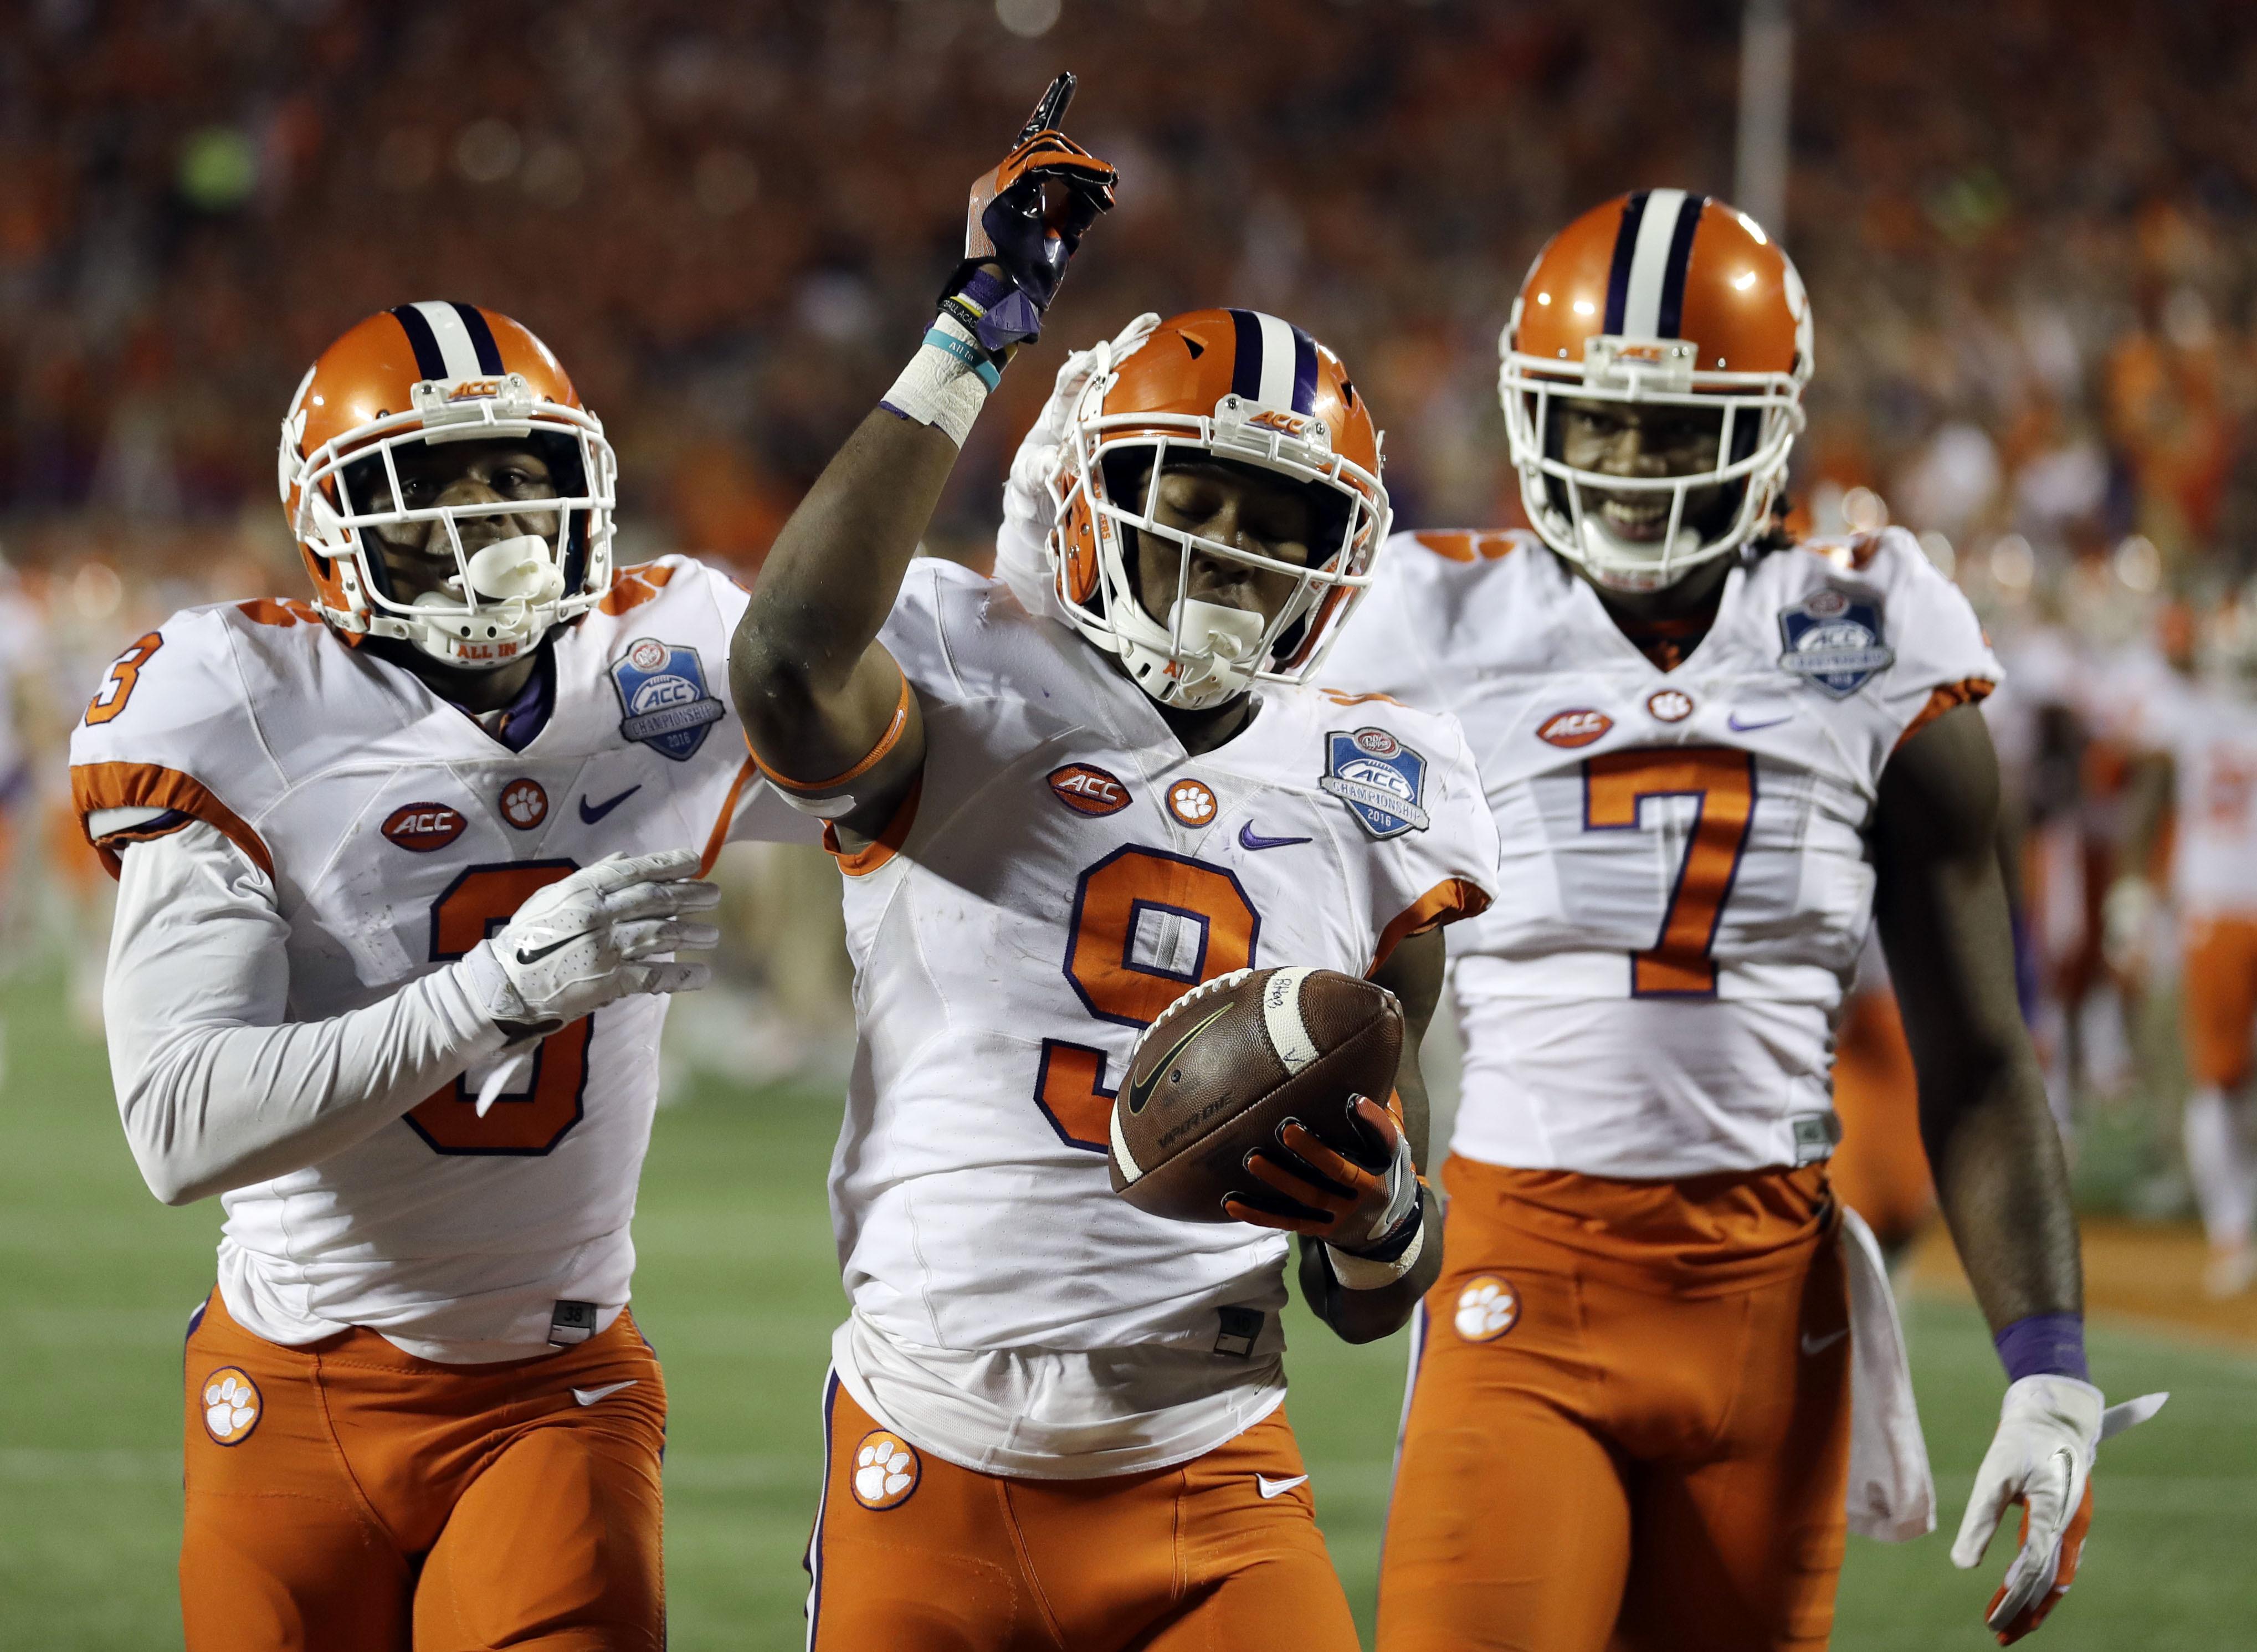 Clemson wide receivers Artavis Scott (3) and Mike Williams (7), congratulate running back Wayne Gallman (9) after Gallman scored a touchdown during the second half of the Atlantic Coast Conference championship NCAA college football game against Virginia T